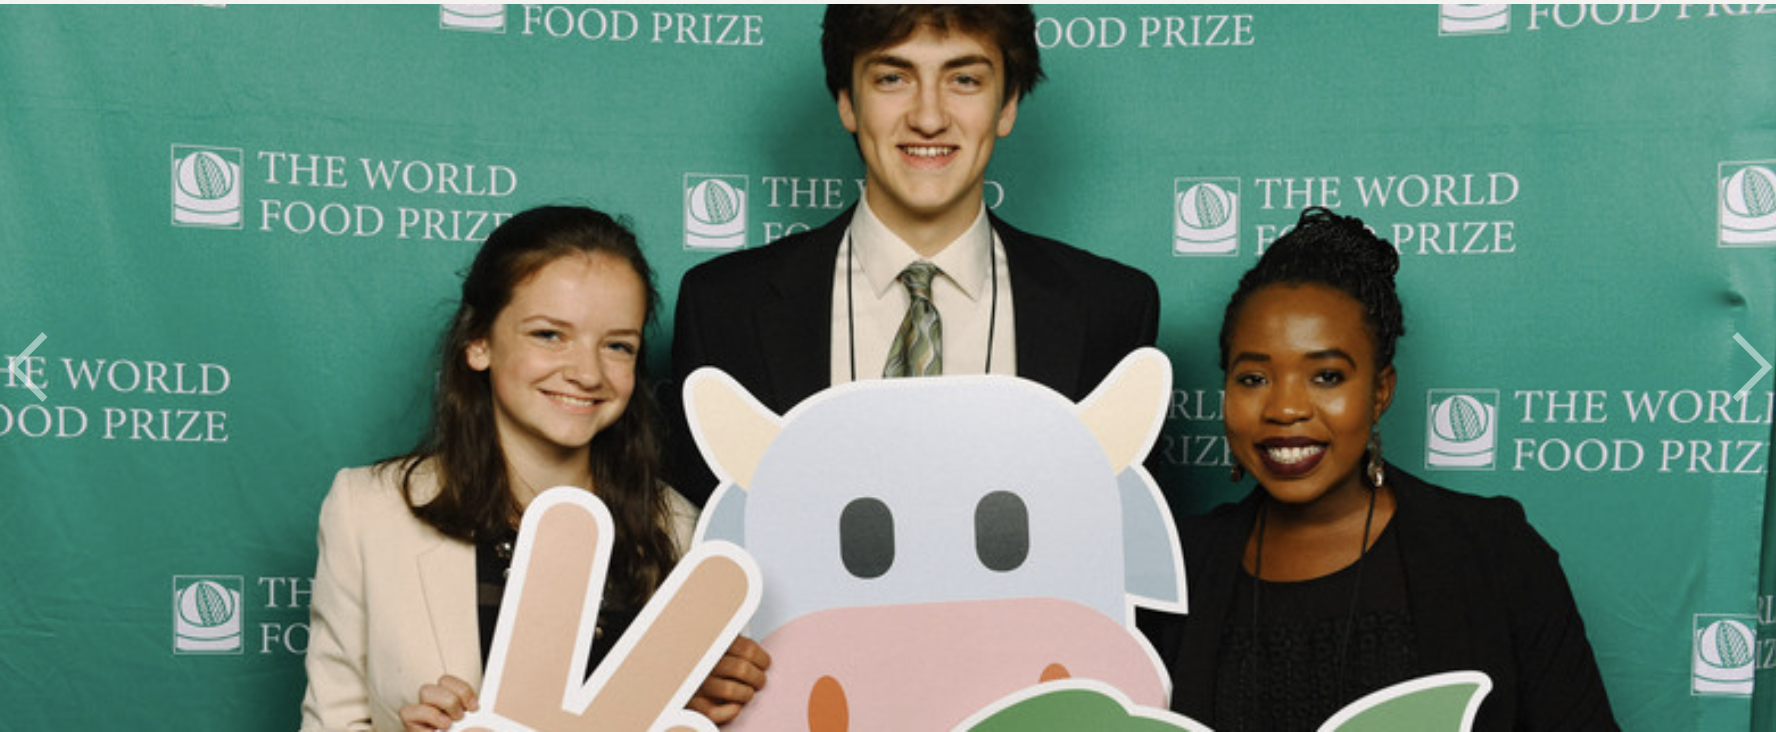 Three students standing in front of a World Food Prize banner